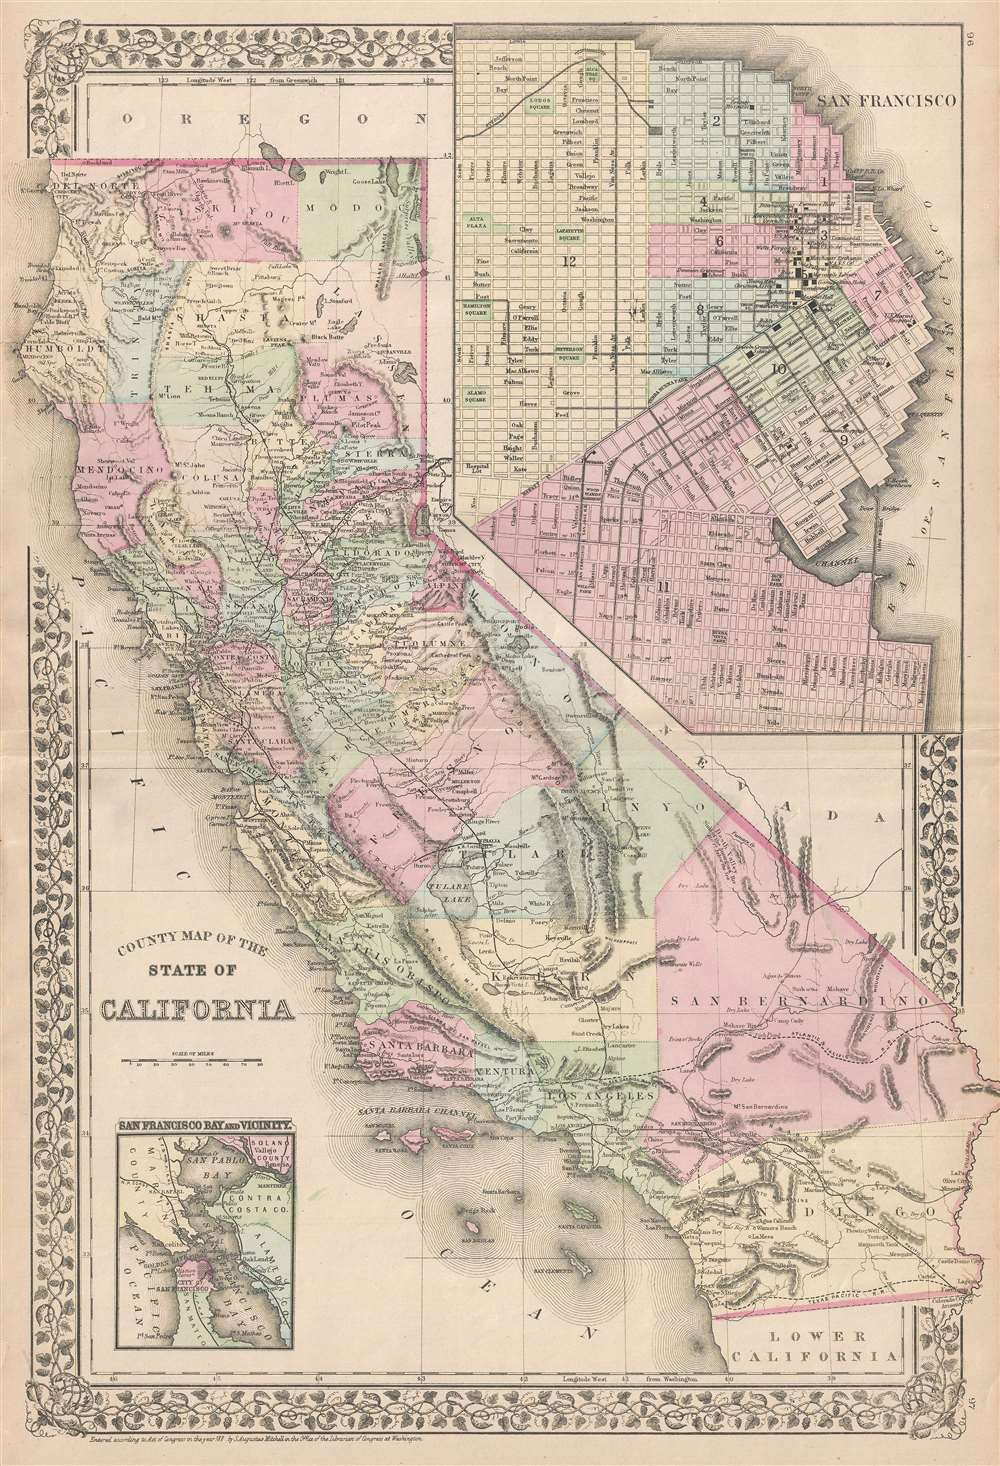 County Map of the State of California. - Main View